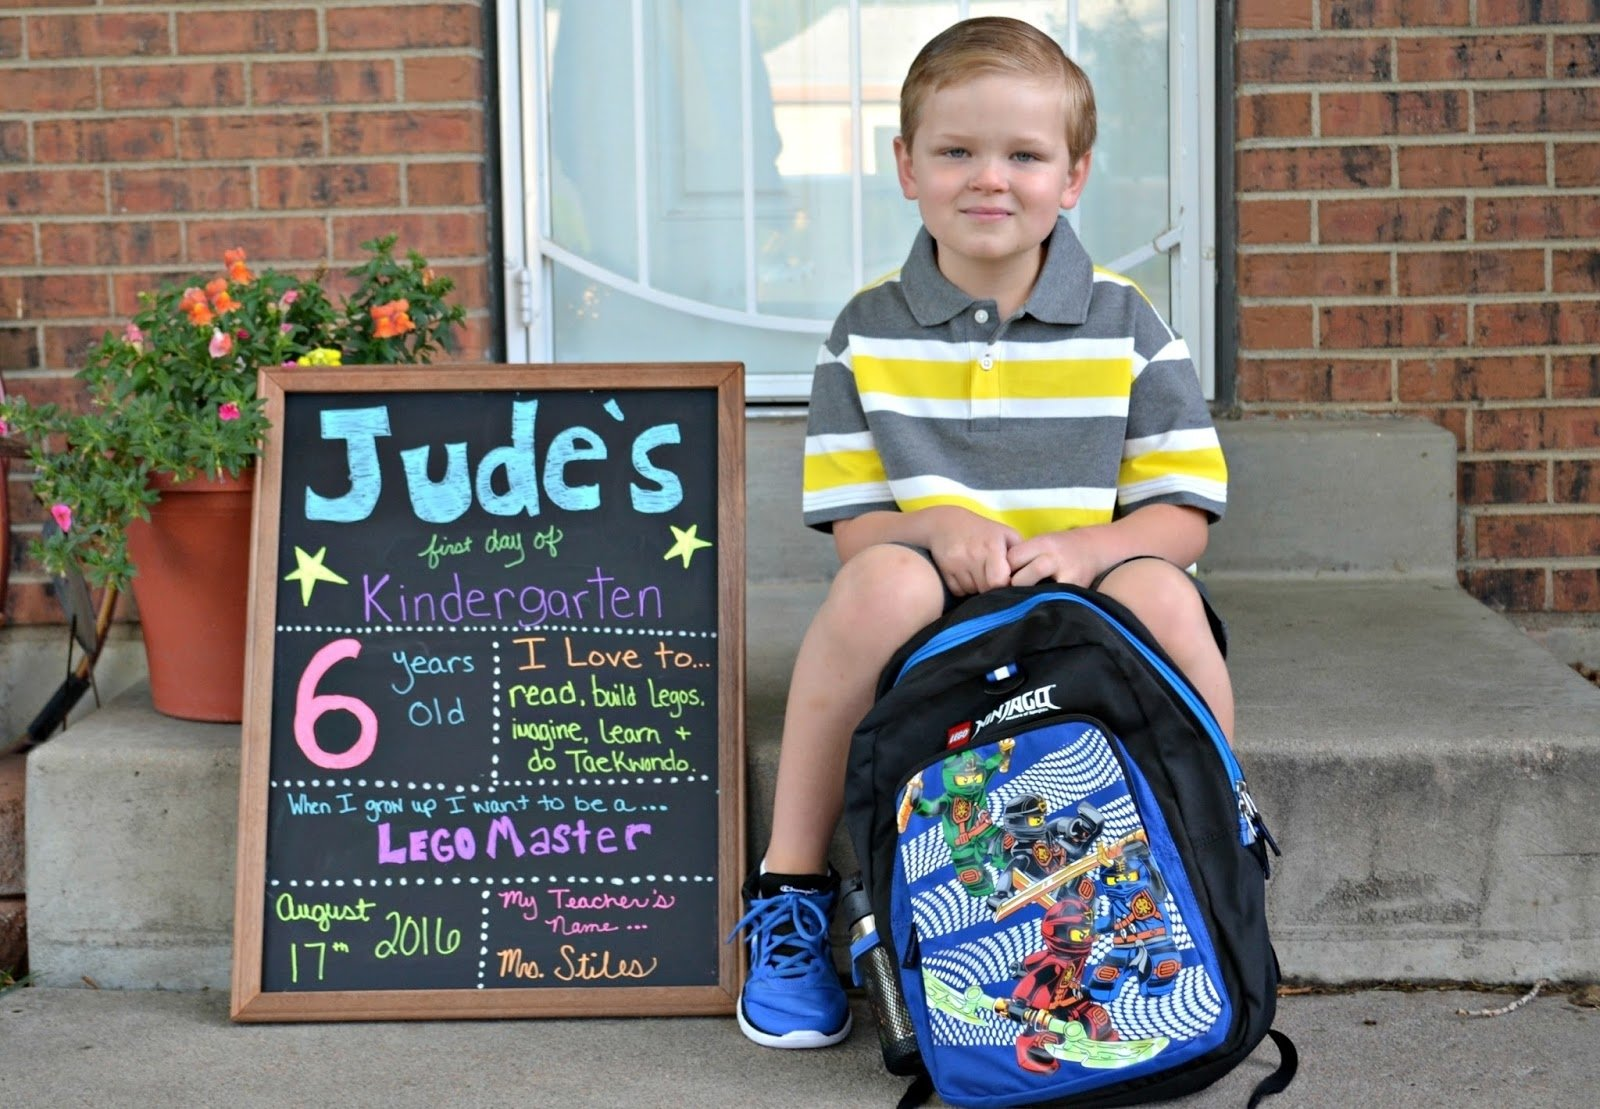 10 Nice 1St Day Of School Ideas unique kindergarten first day of school picture ideas collections 2020